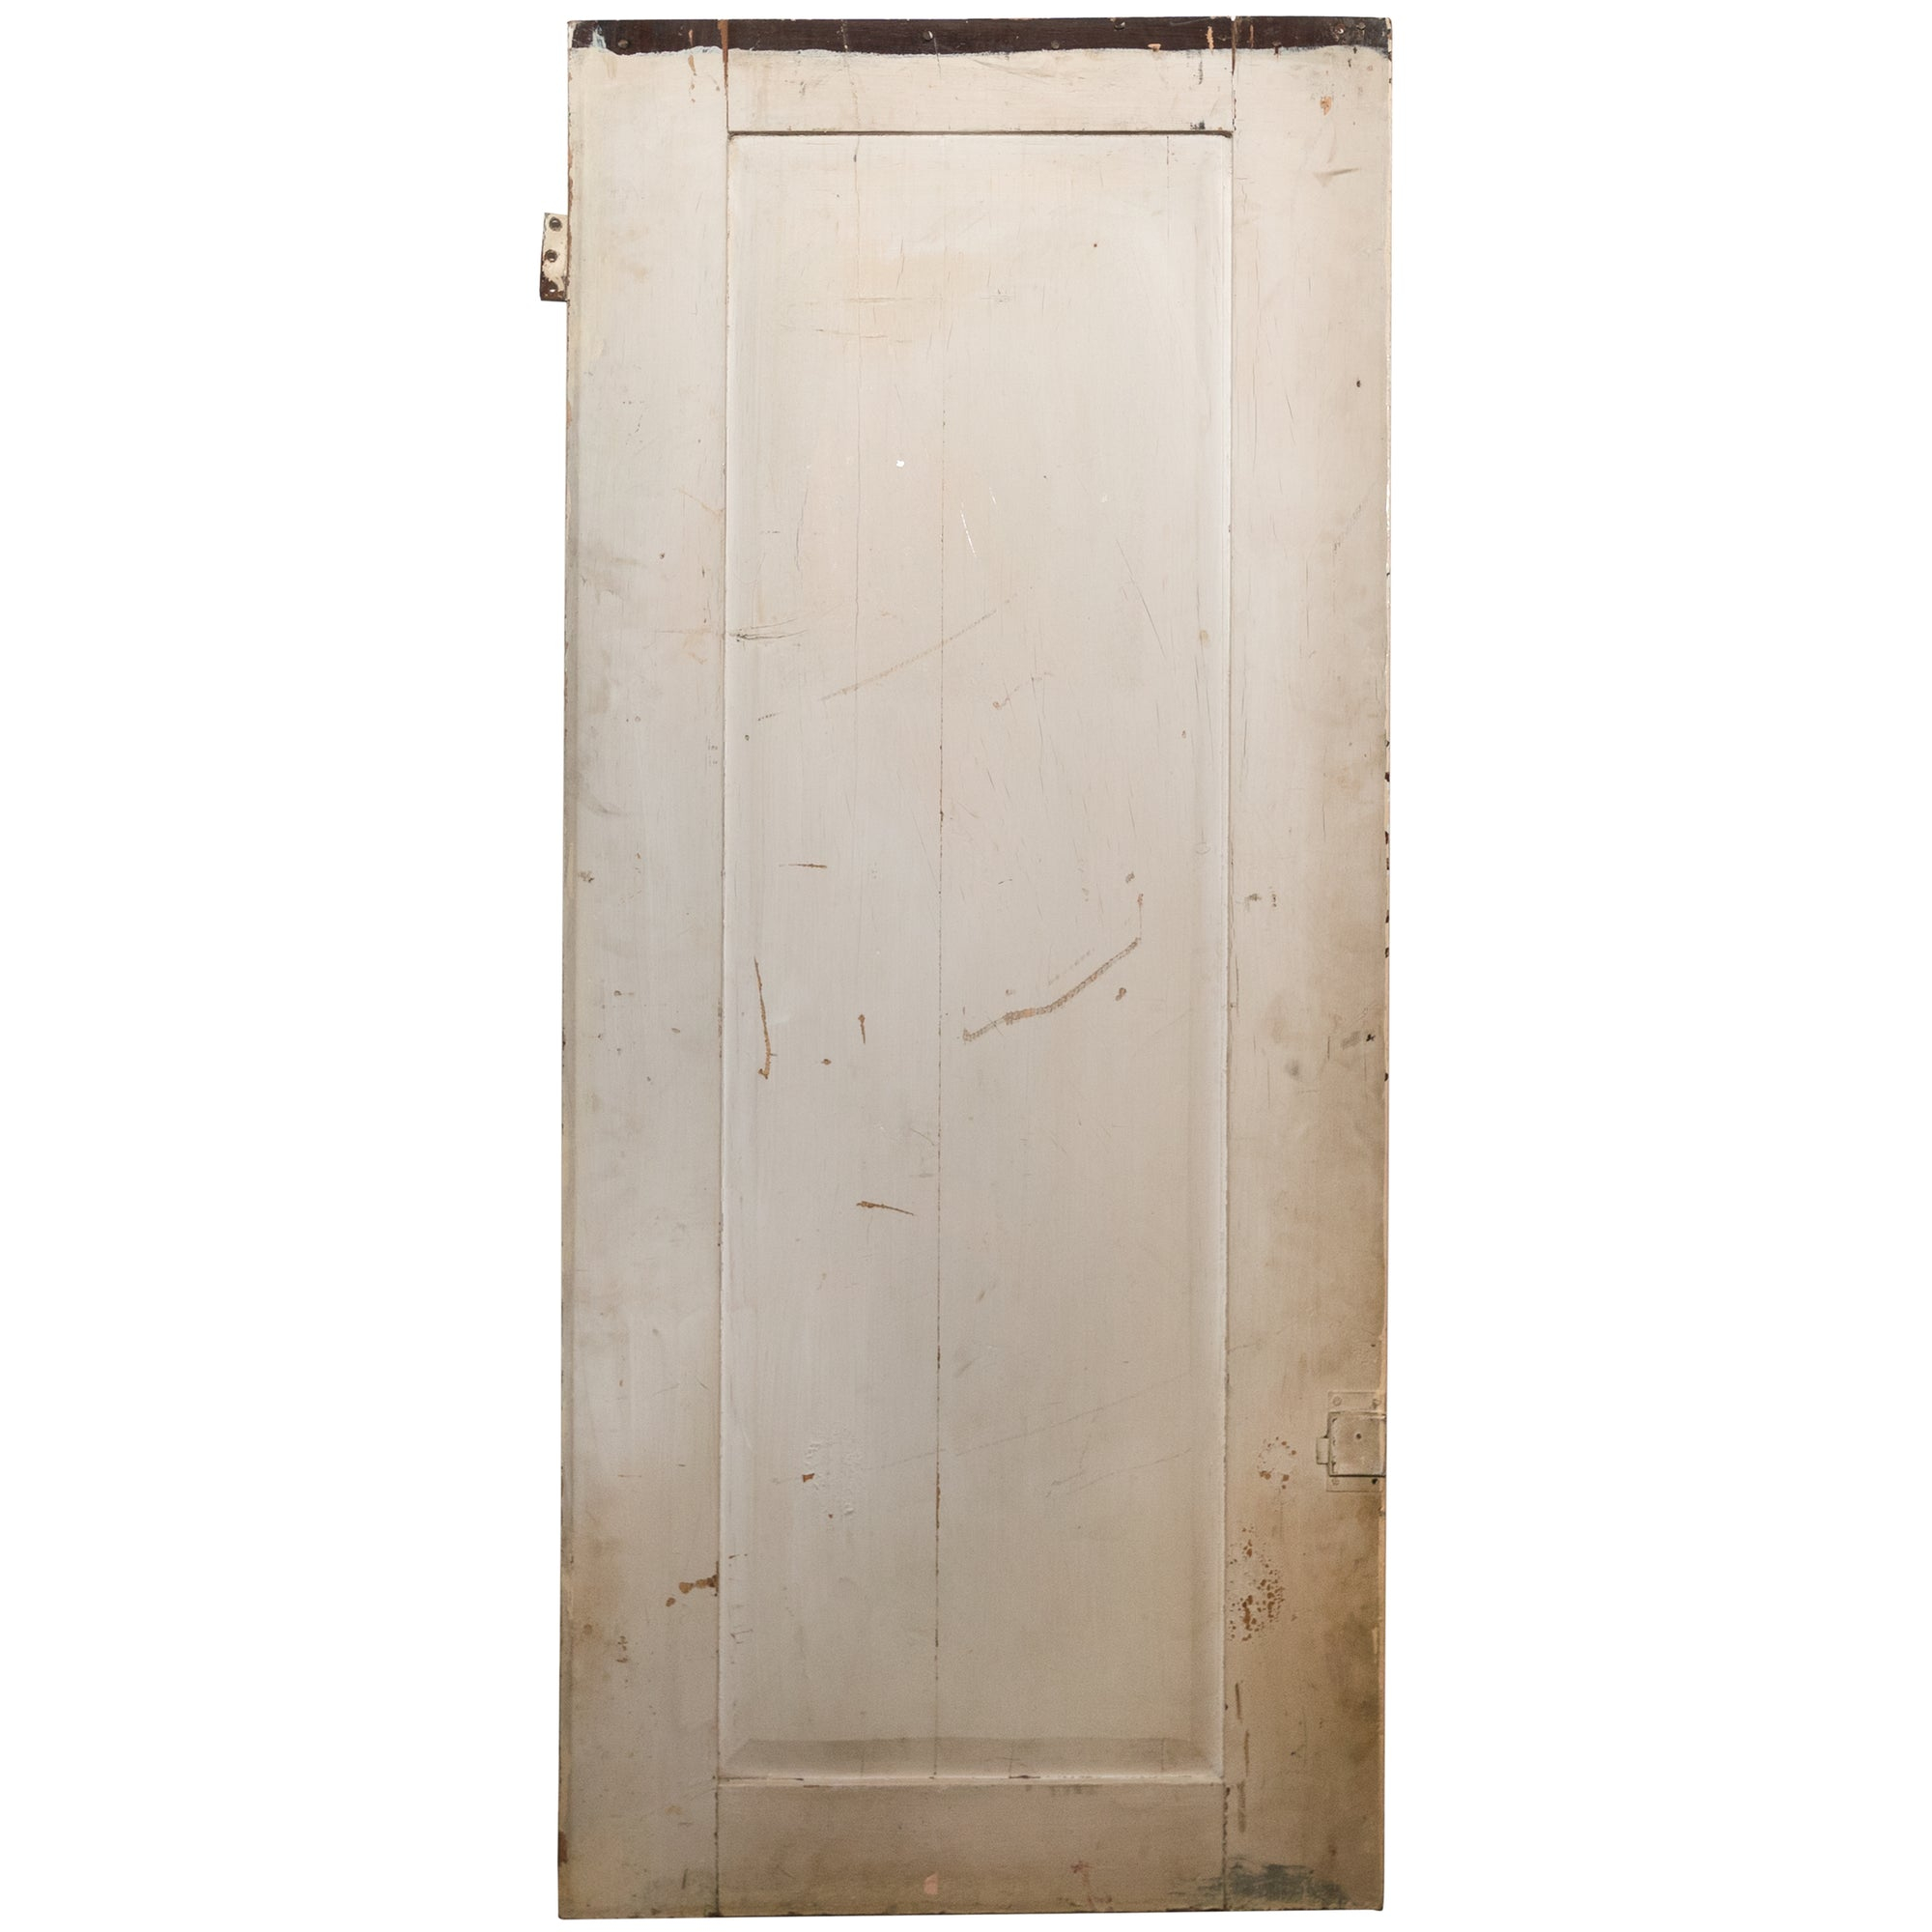 Antique Victorian Pine Cupboard Door - 143cm x 61cm - The Architectural Forum